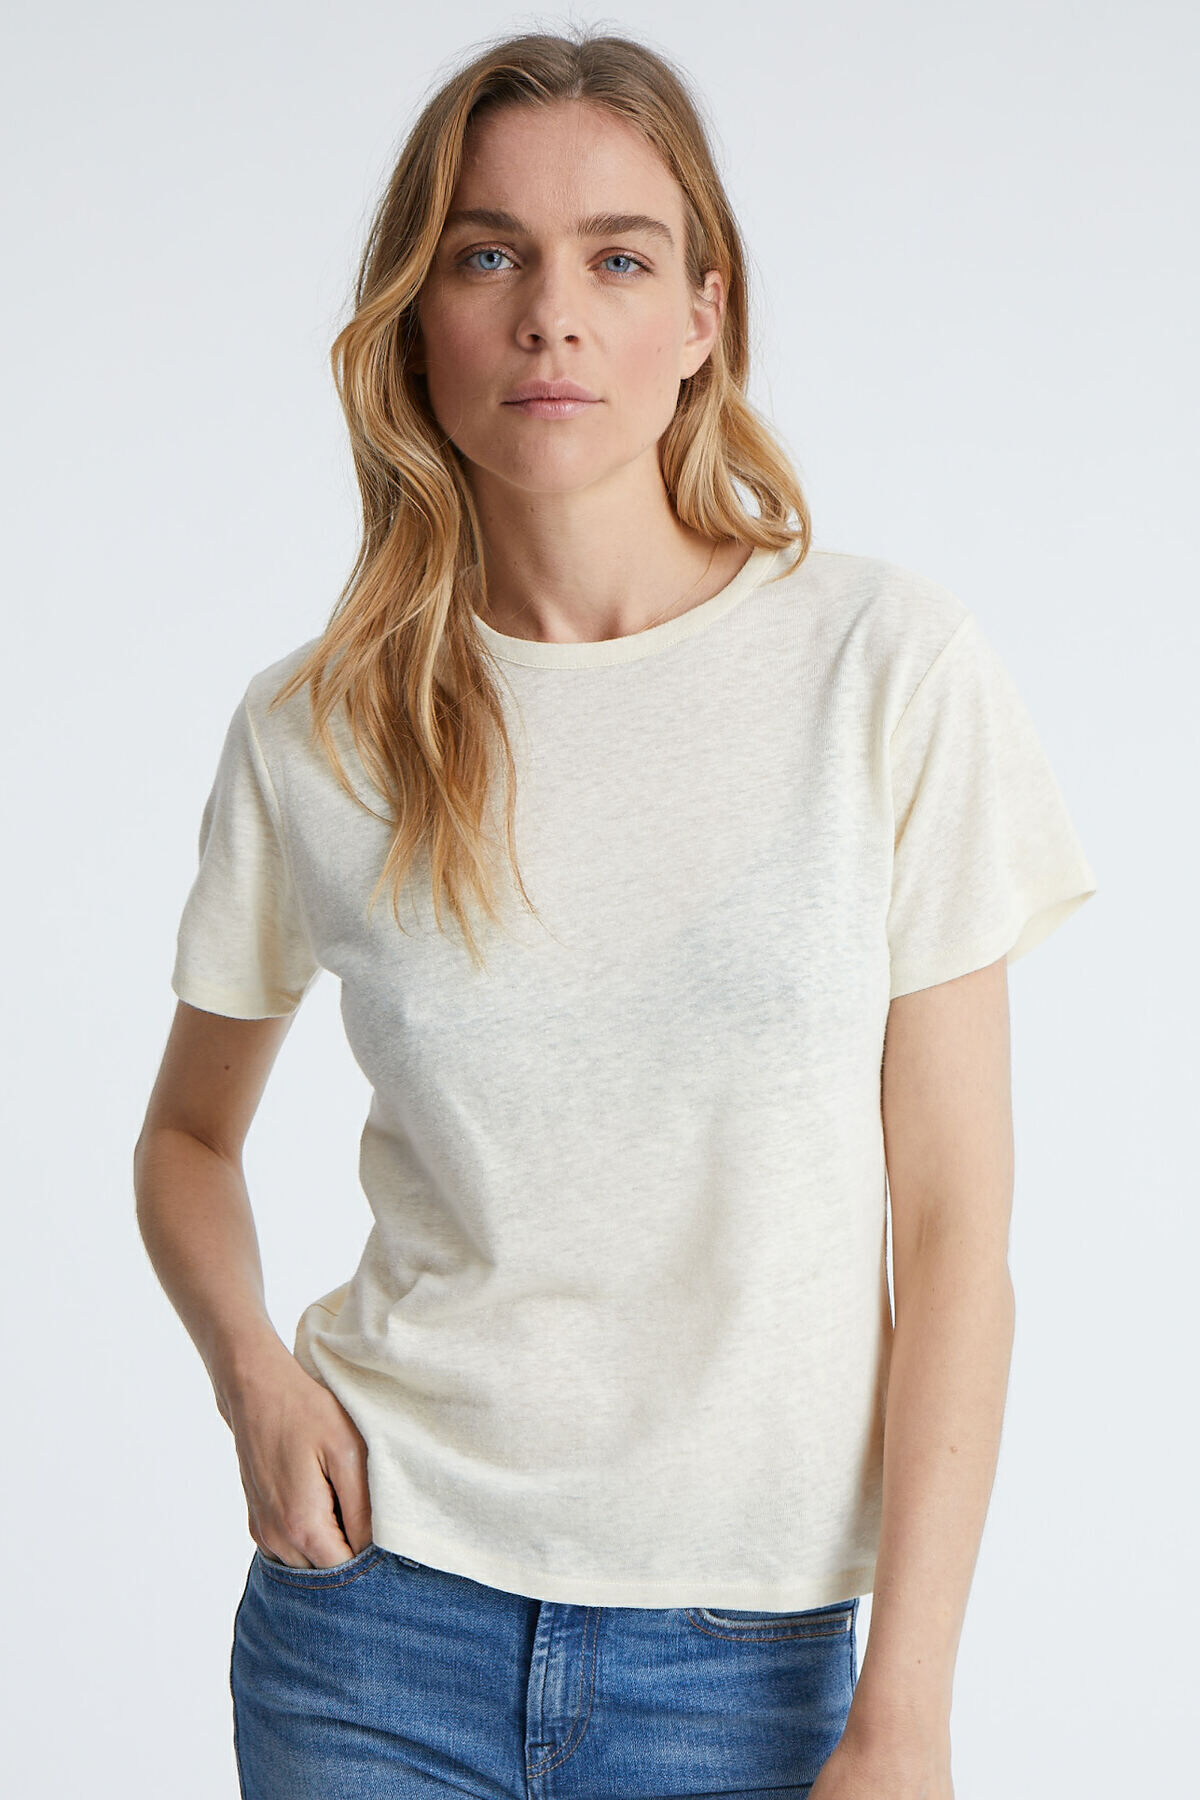 CAMELLIA T-SHIRT Premium Cotton & Linen - Relaxed Fit